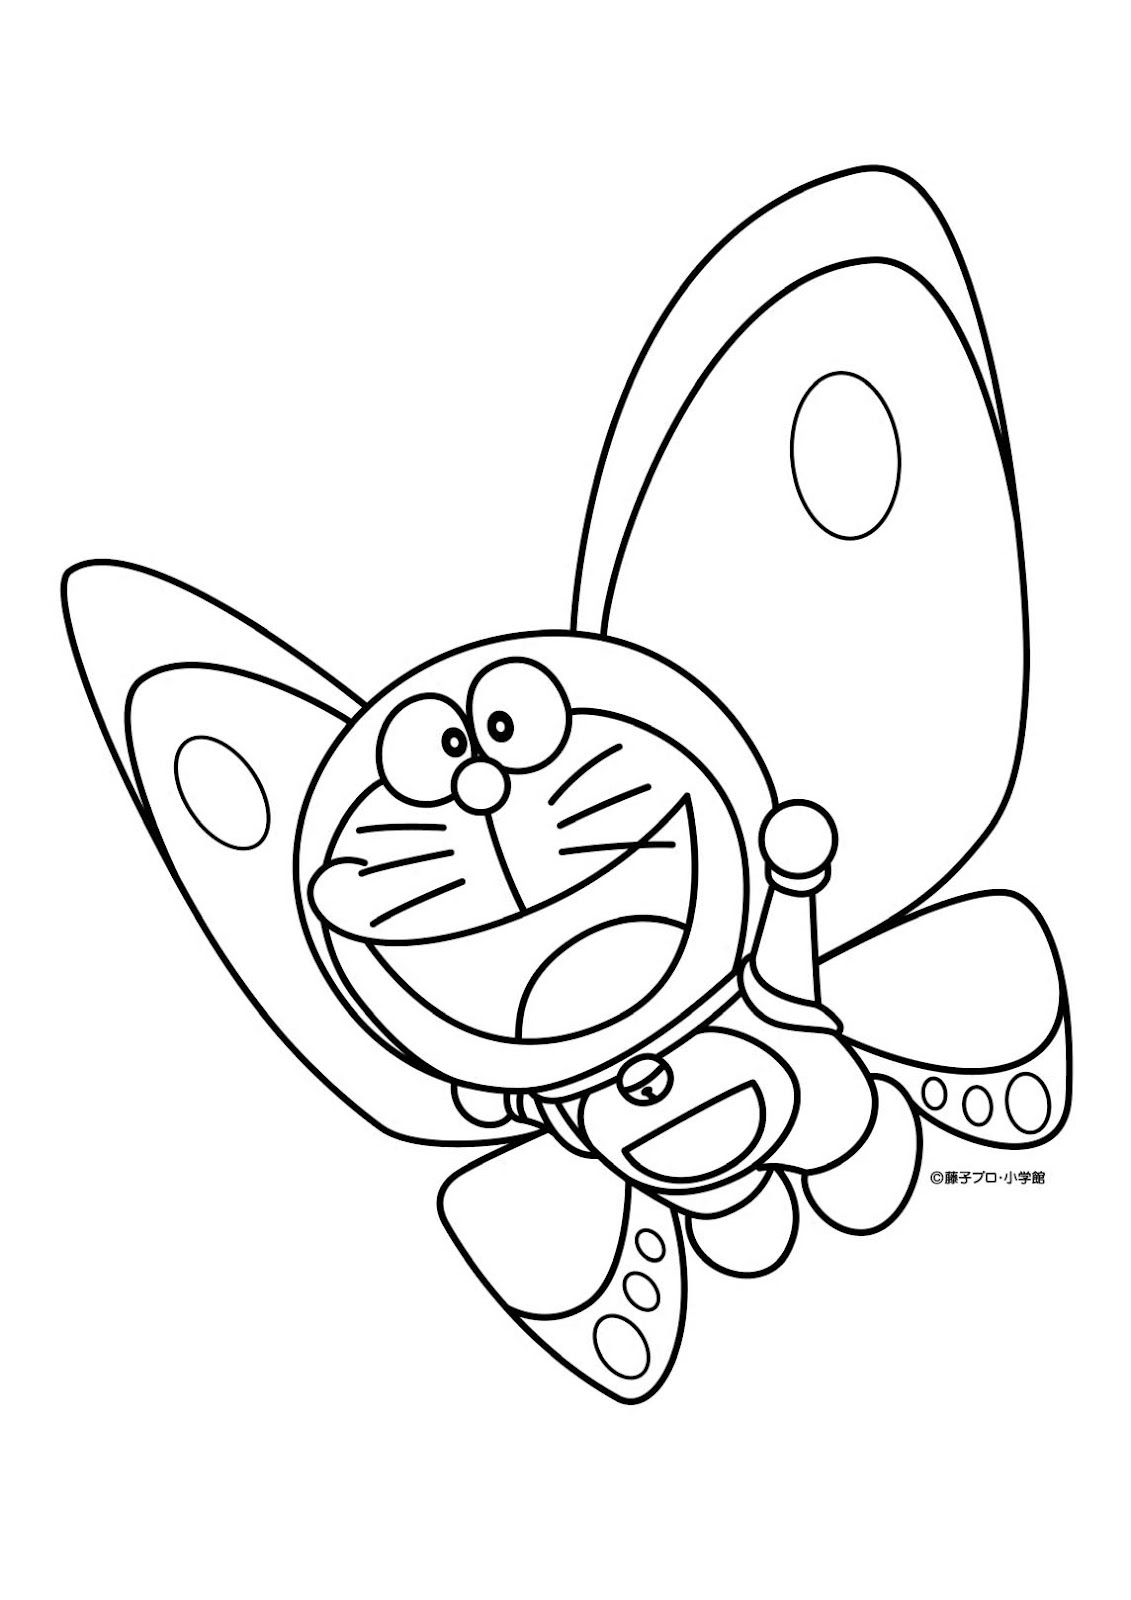 Butterfly Doraemon Coloring Page